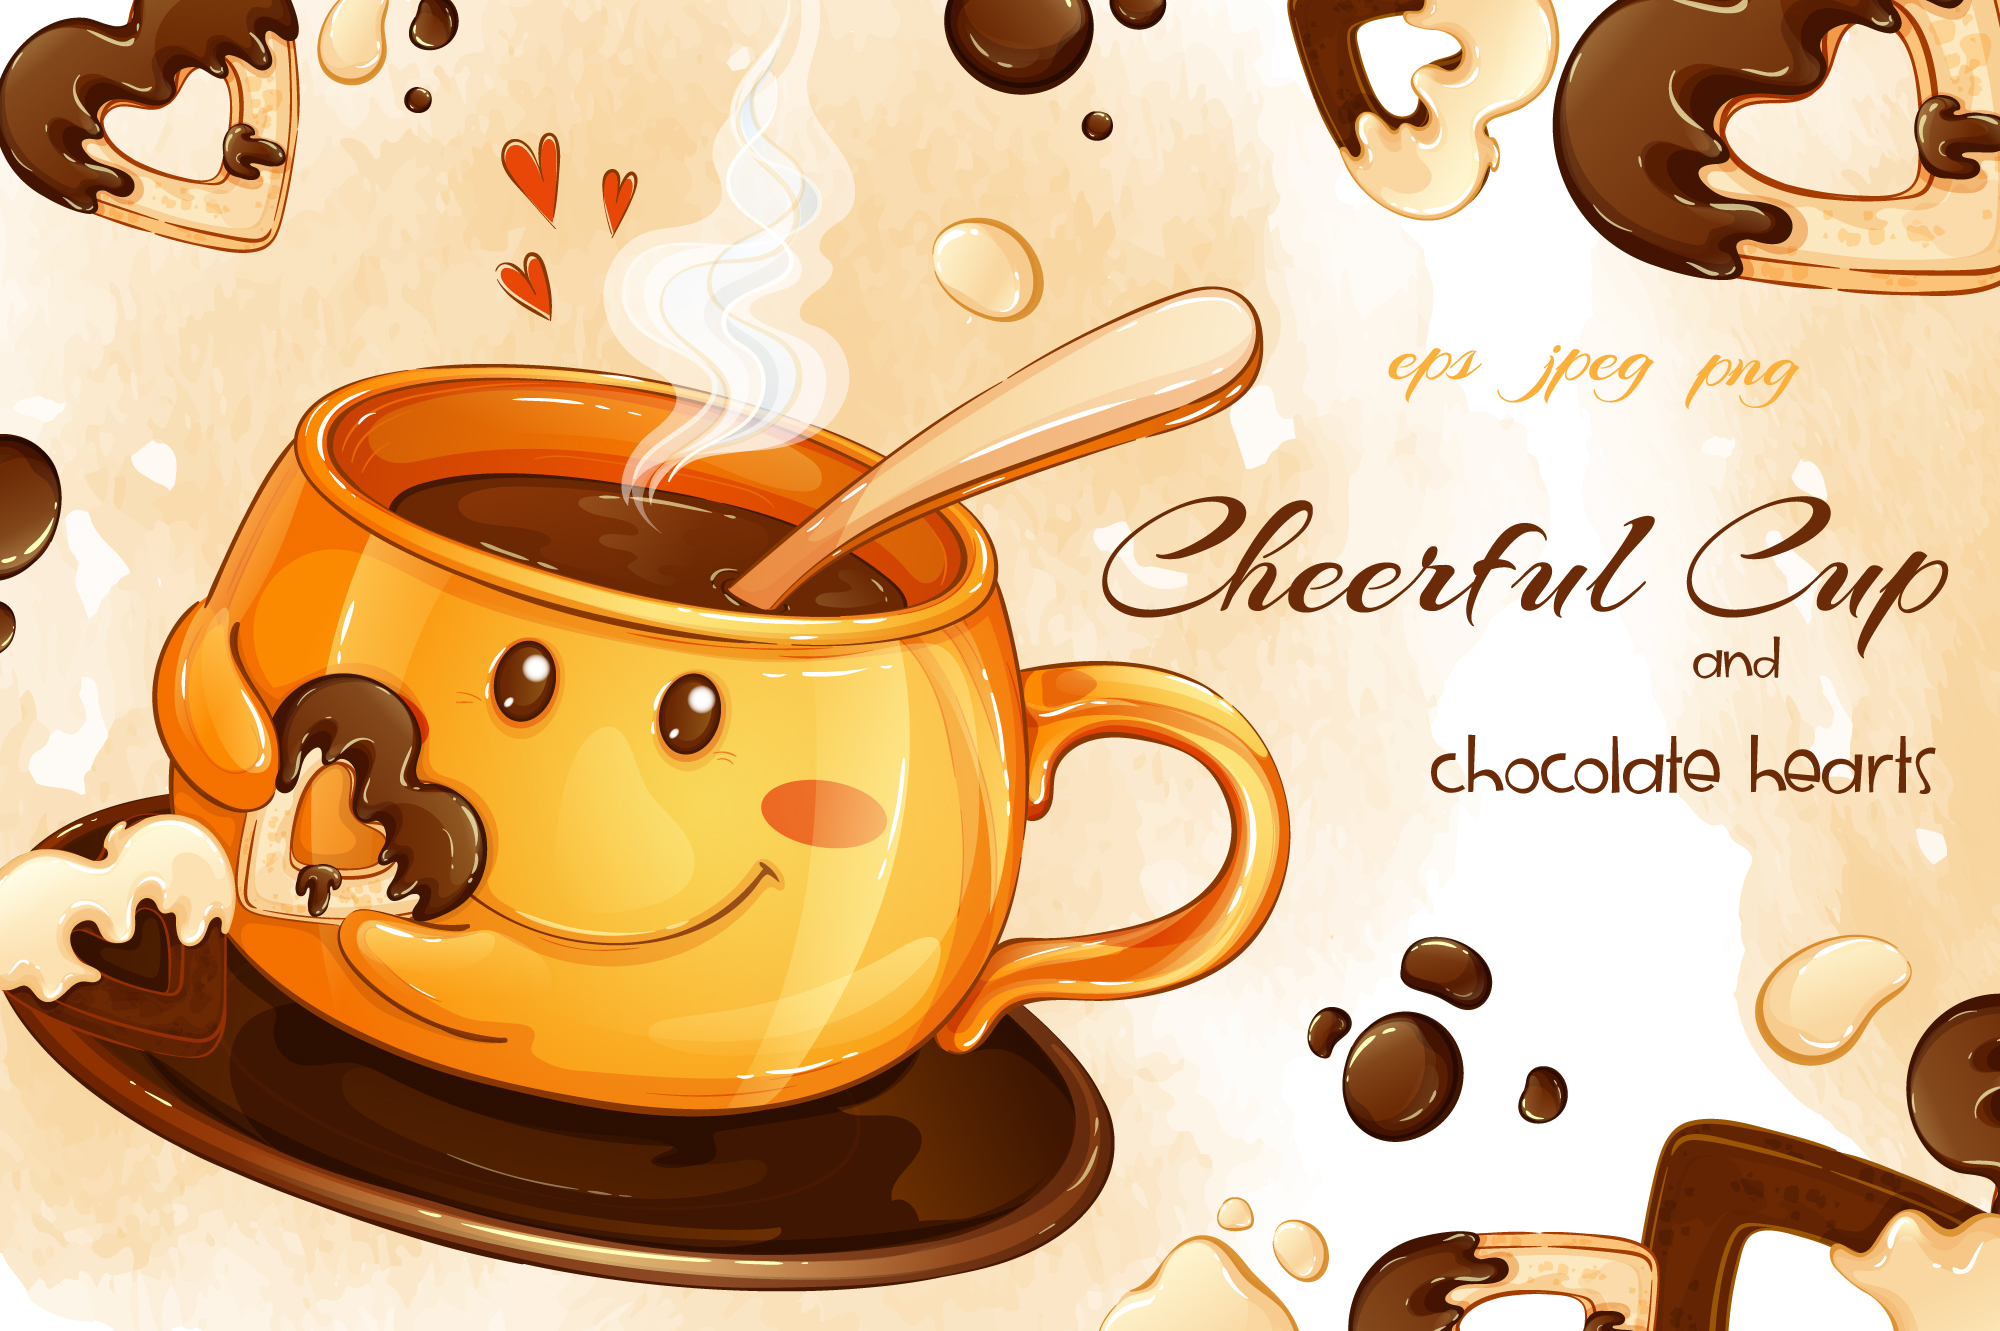 Download Free Cheerful Cup Graphic By Maycat Creative Fabrica for Cricut Explore, Silhouette and other cutting machines.